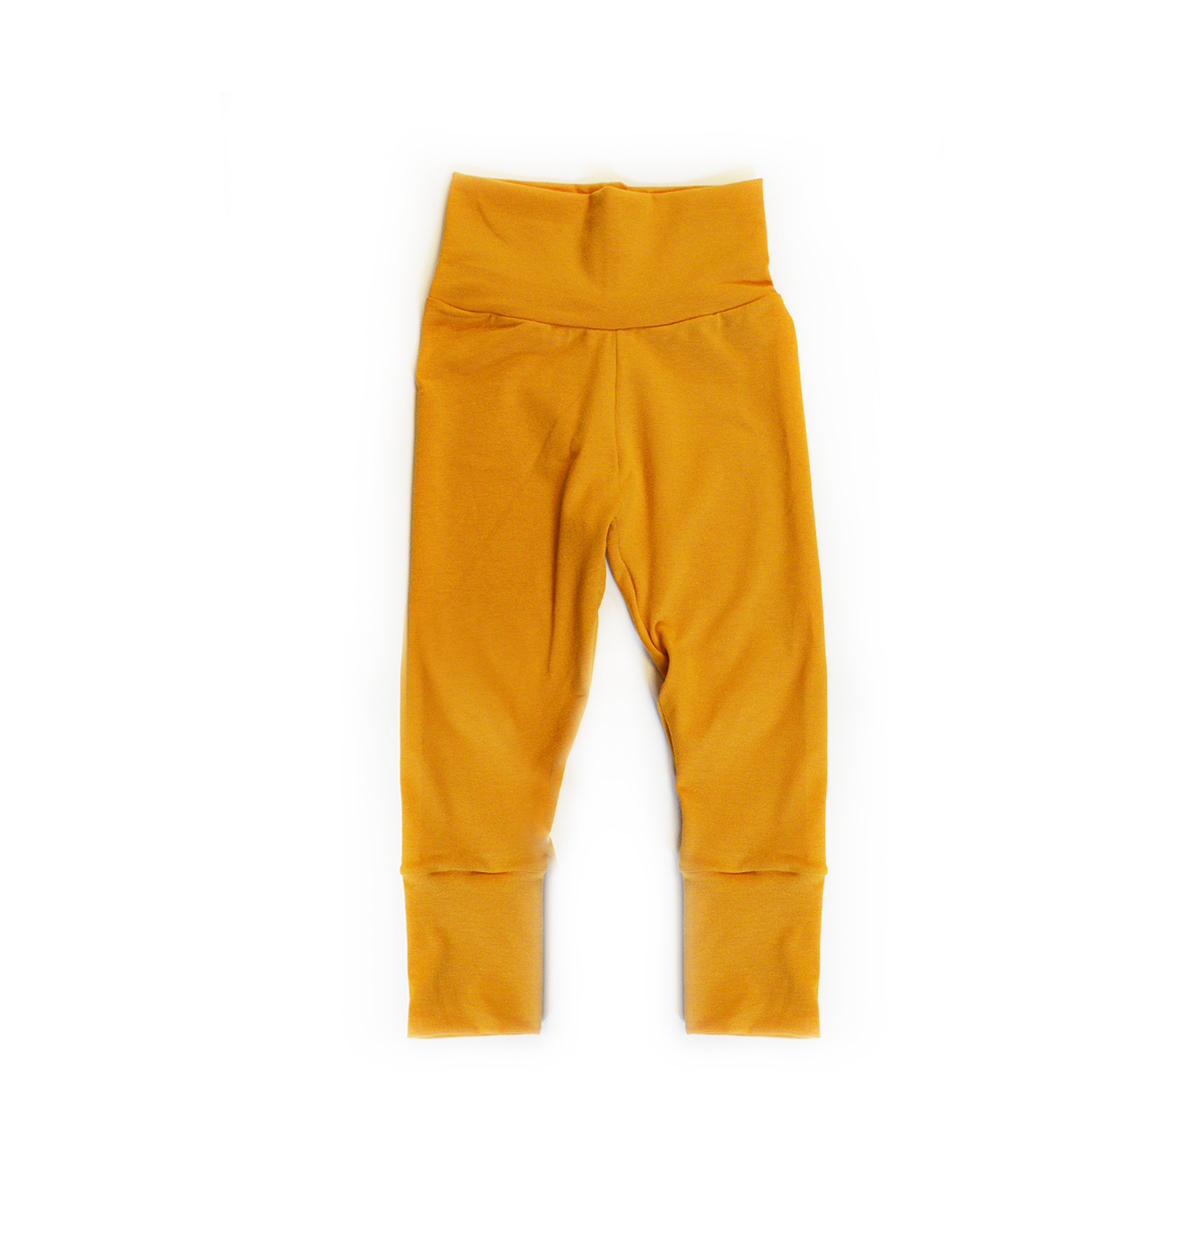 Little Sprout One-Size Pants™ Golden Child  - Cotton 00972